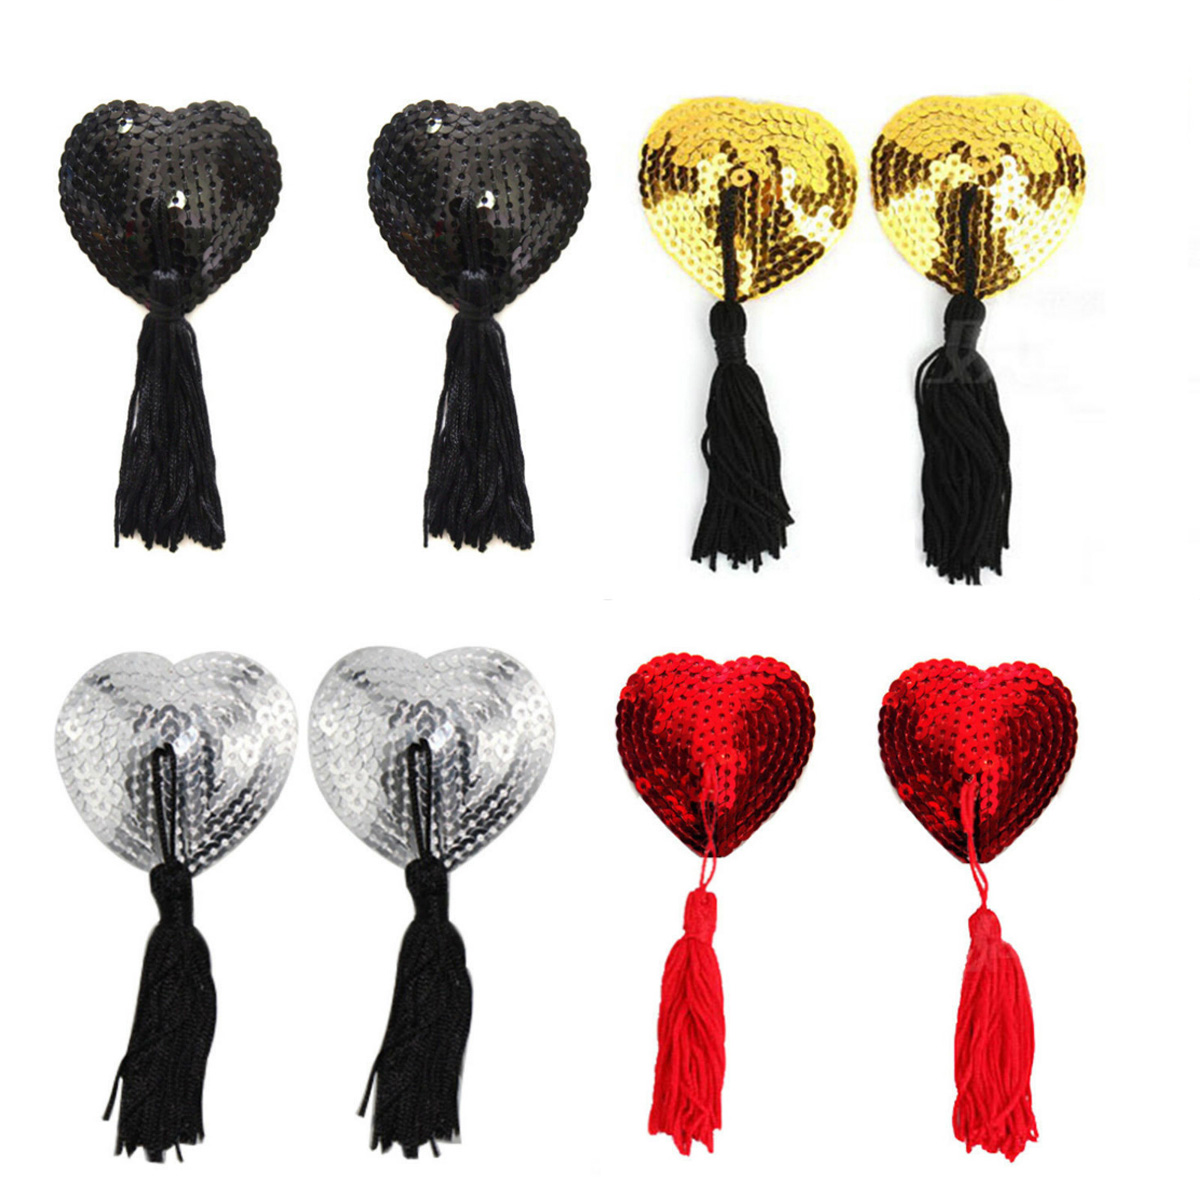 1 Pair Sexy Pasties Stickers Women Lingerie Sequin Tassel Breast Bra Nipple Cover Heart Shape Nipple Stickers Pasties